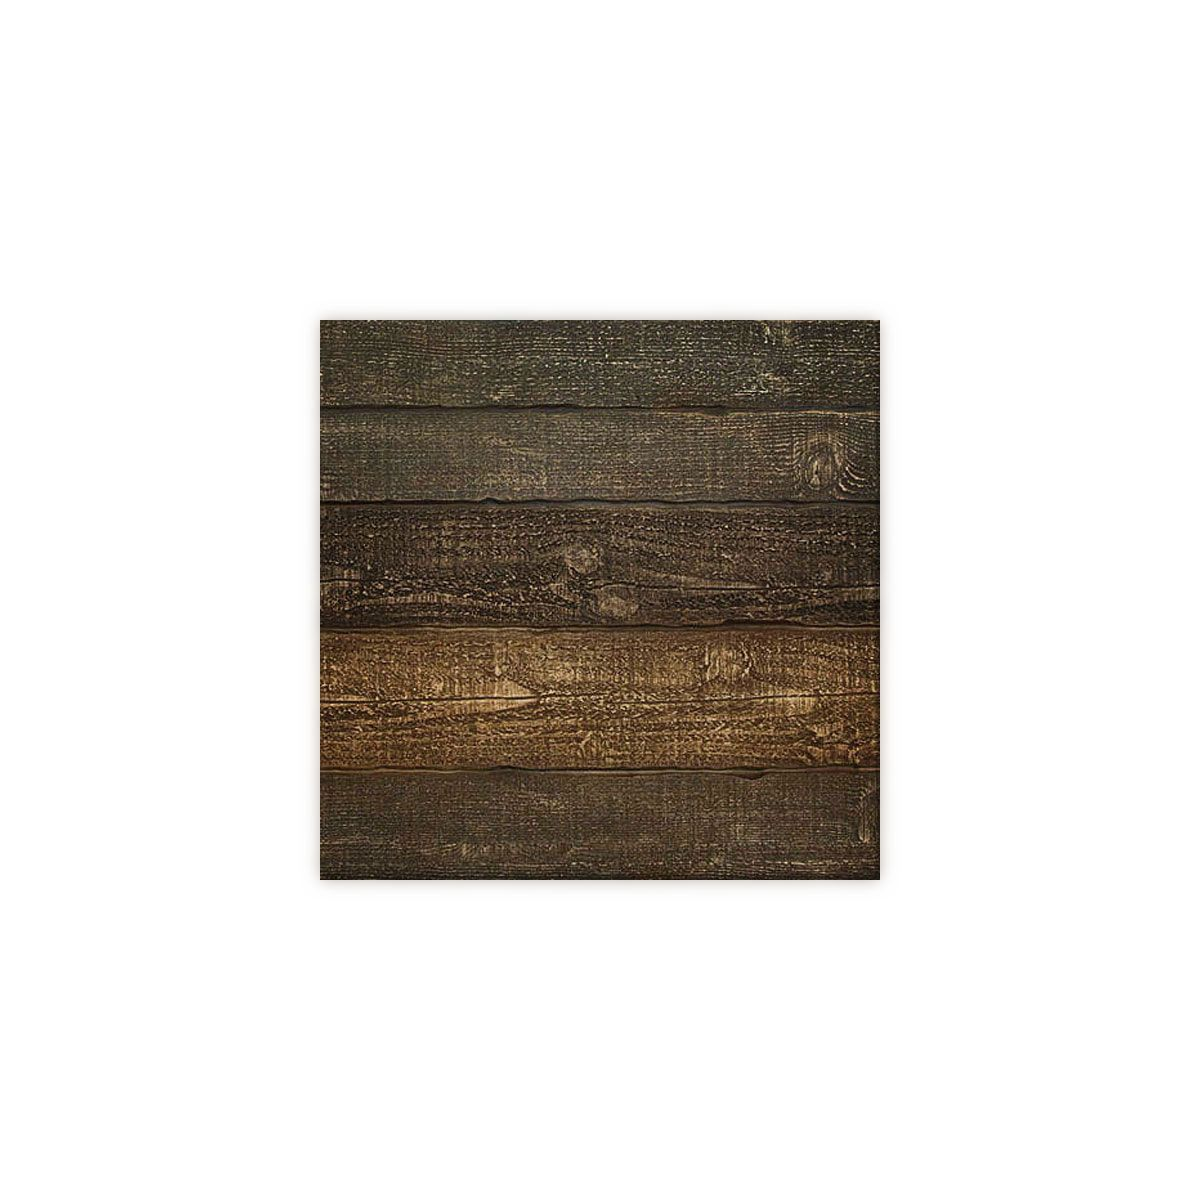 8 Inch W X 10 Inch H Rough Sawn Endurathane Faux Wood Siding Panel Sample Weathered Wood Panel Siding Wood Siding Faux Wood